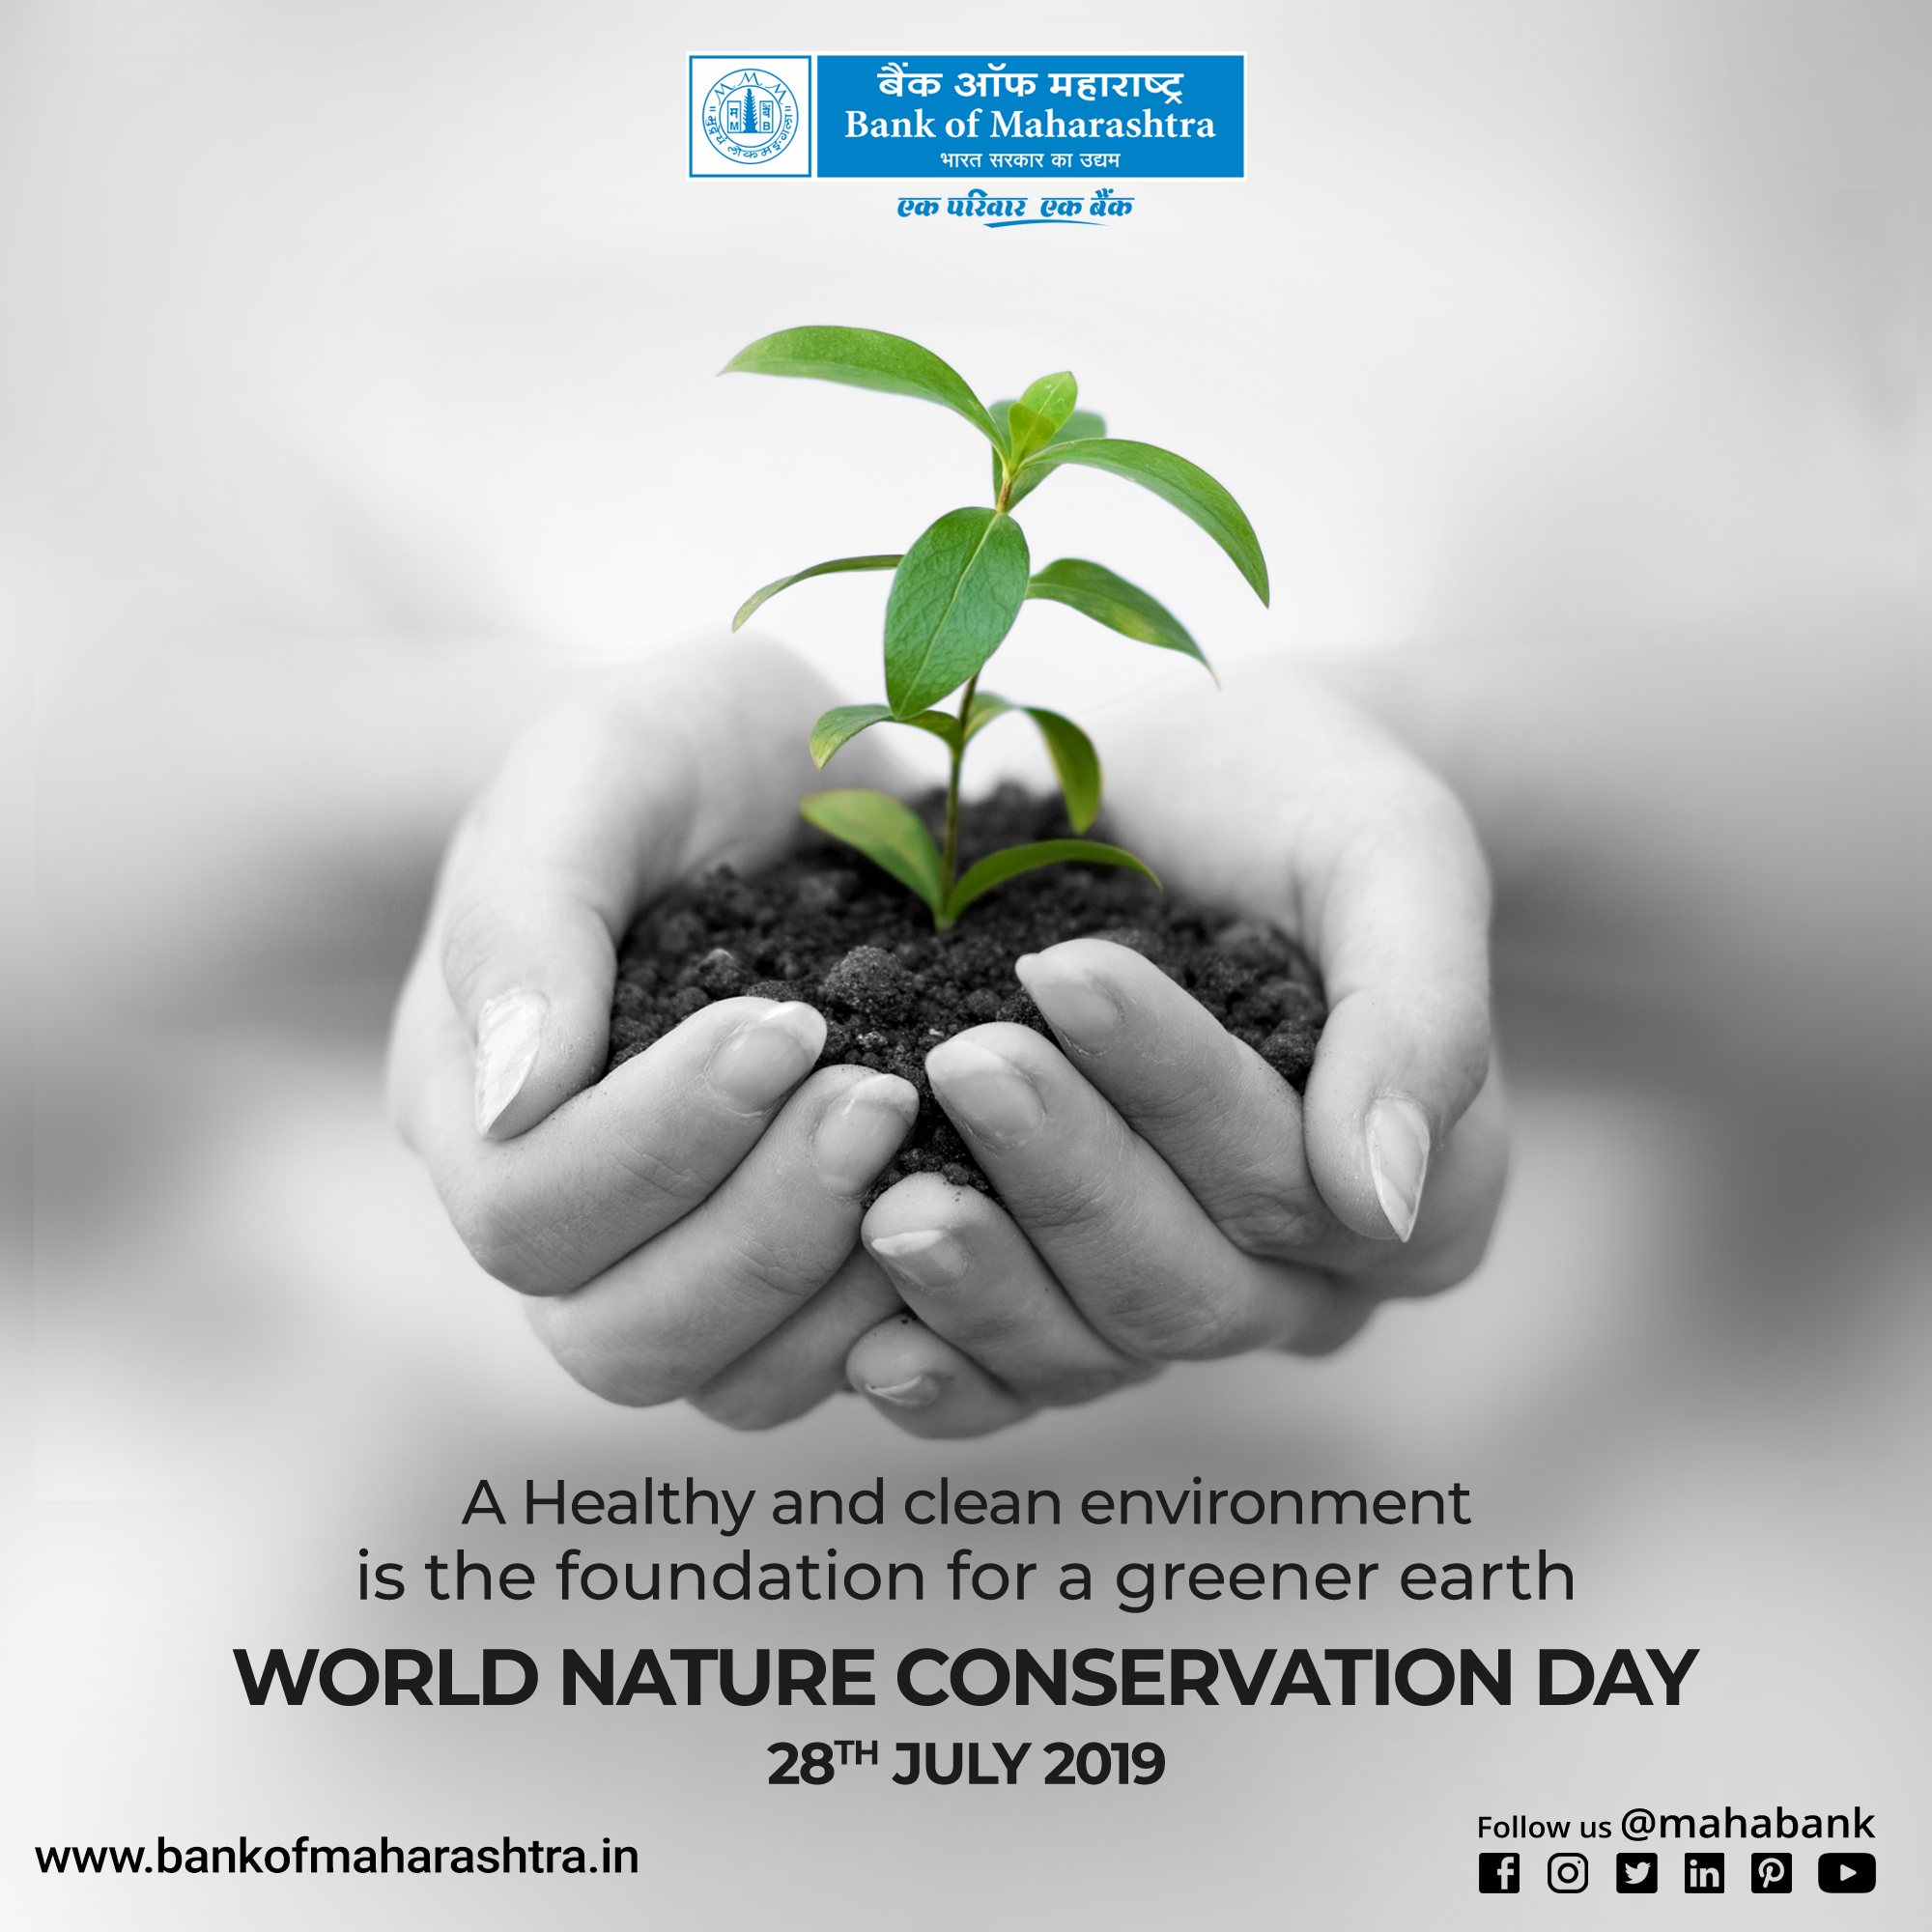 A Healthy And Clean Environment Is The Foundation For A Greener Earth Bom Mahabank Bankofmaharashtra Worldnatu Nature Conservation Clean Environment Nature